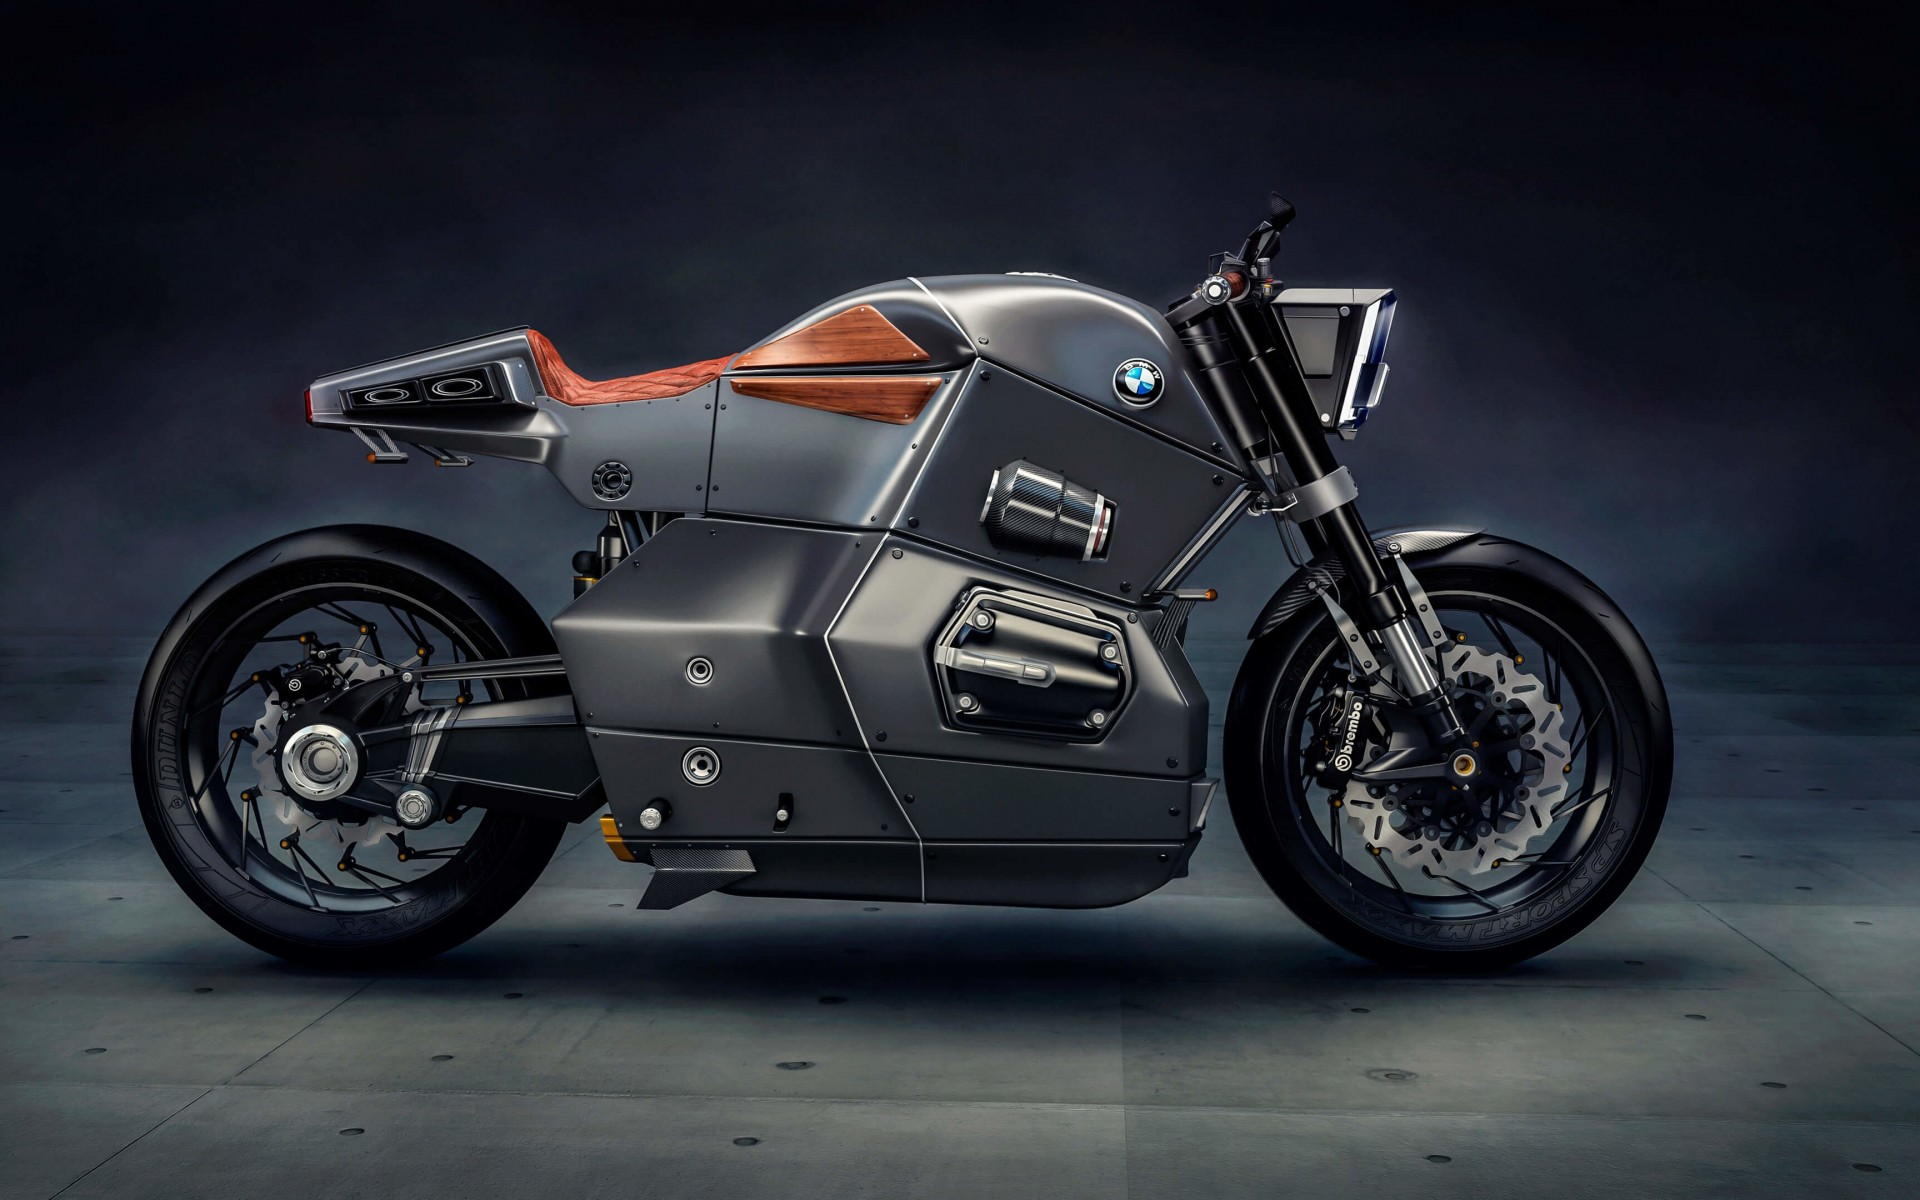 BMW M Bike Concept Wallpaper for Desktop 1920x1200